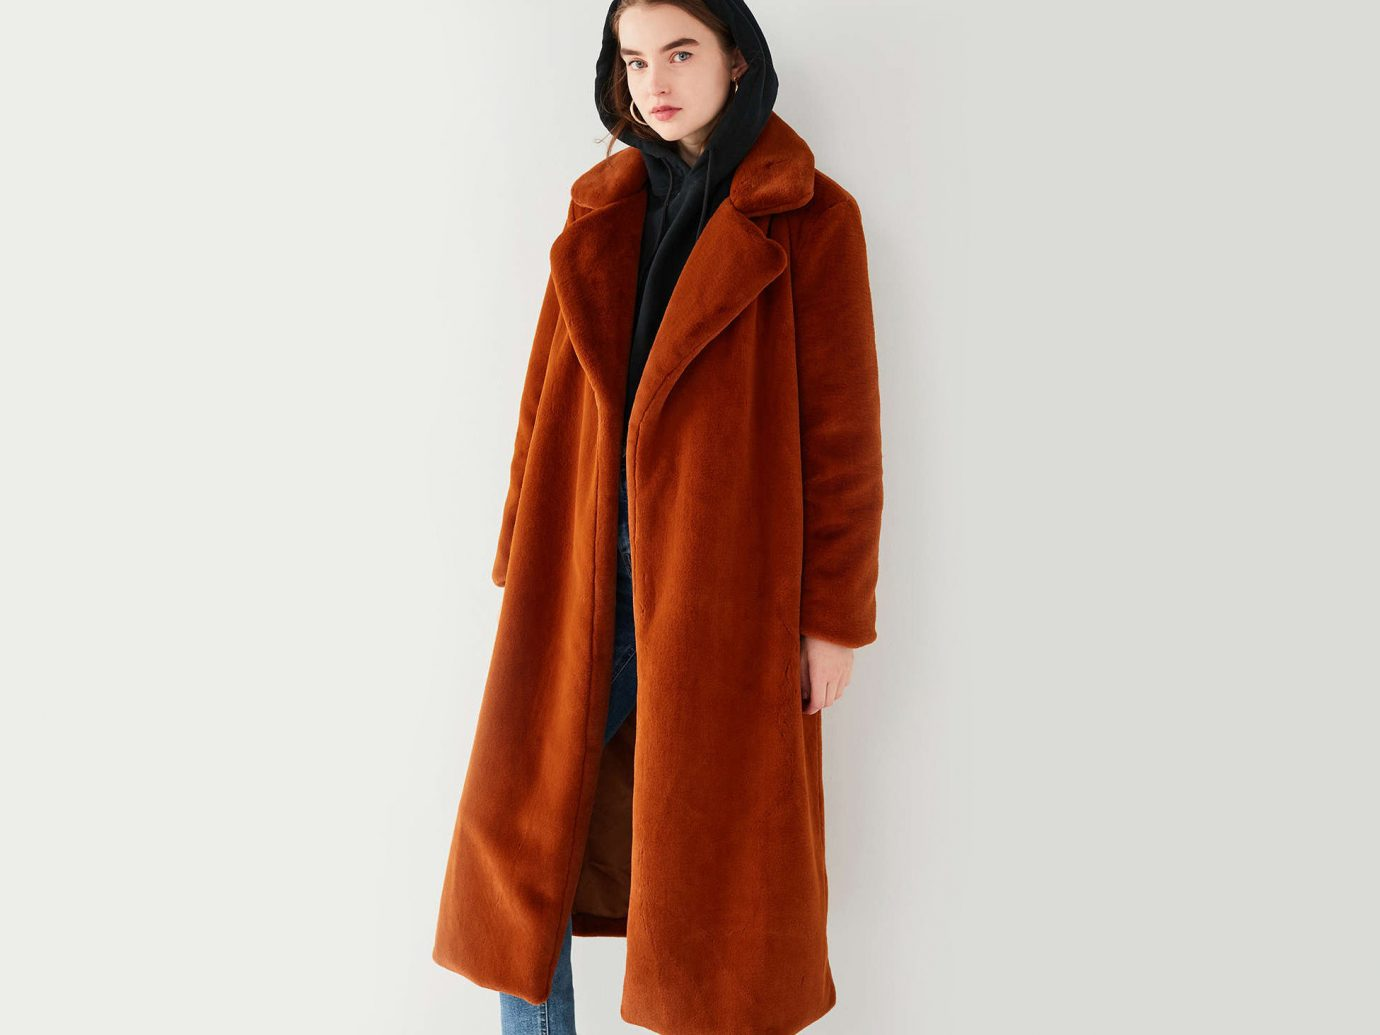 Style + Design Travel Shop fur clothing coat fur wearing hood overcoat jacket neck fashion model dressed orange clothing